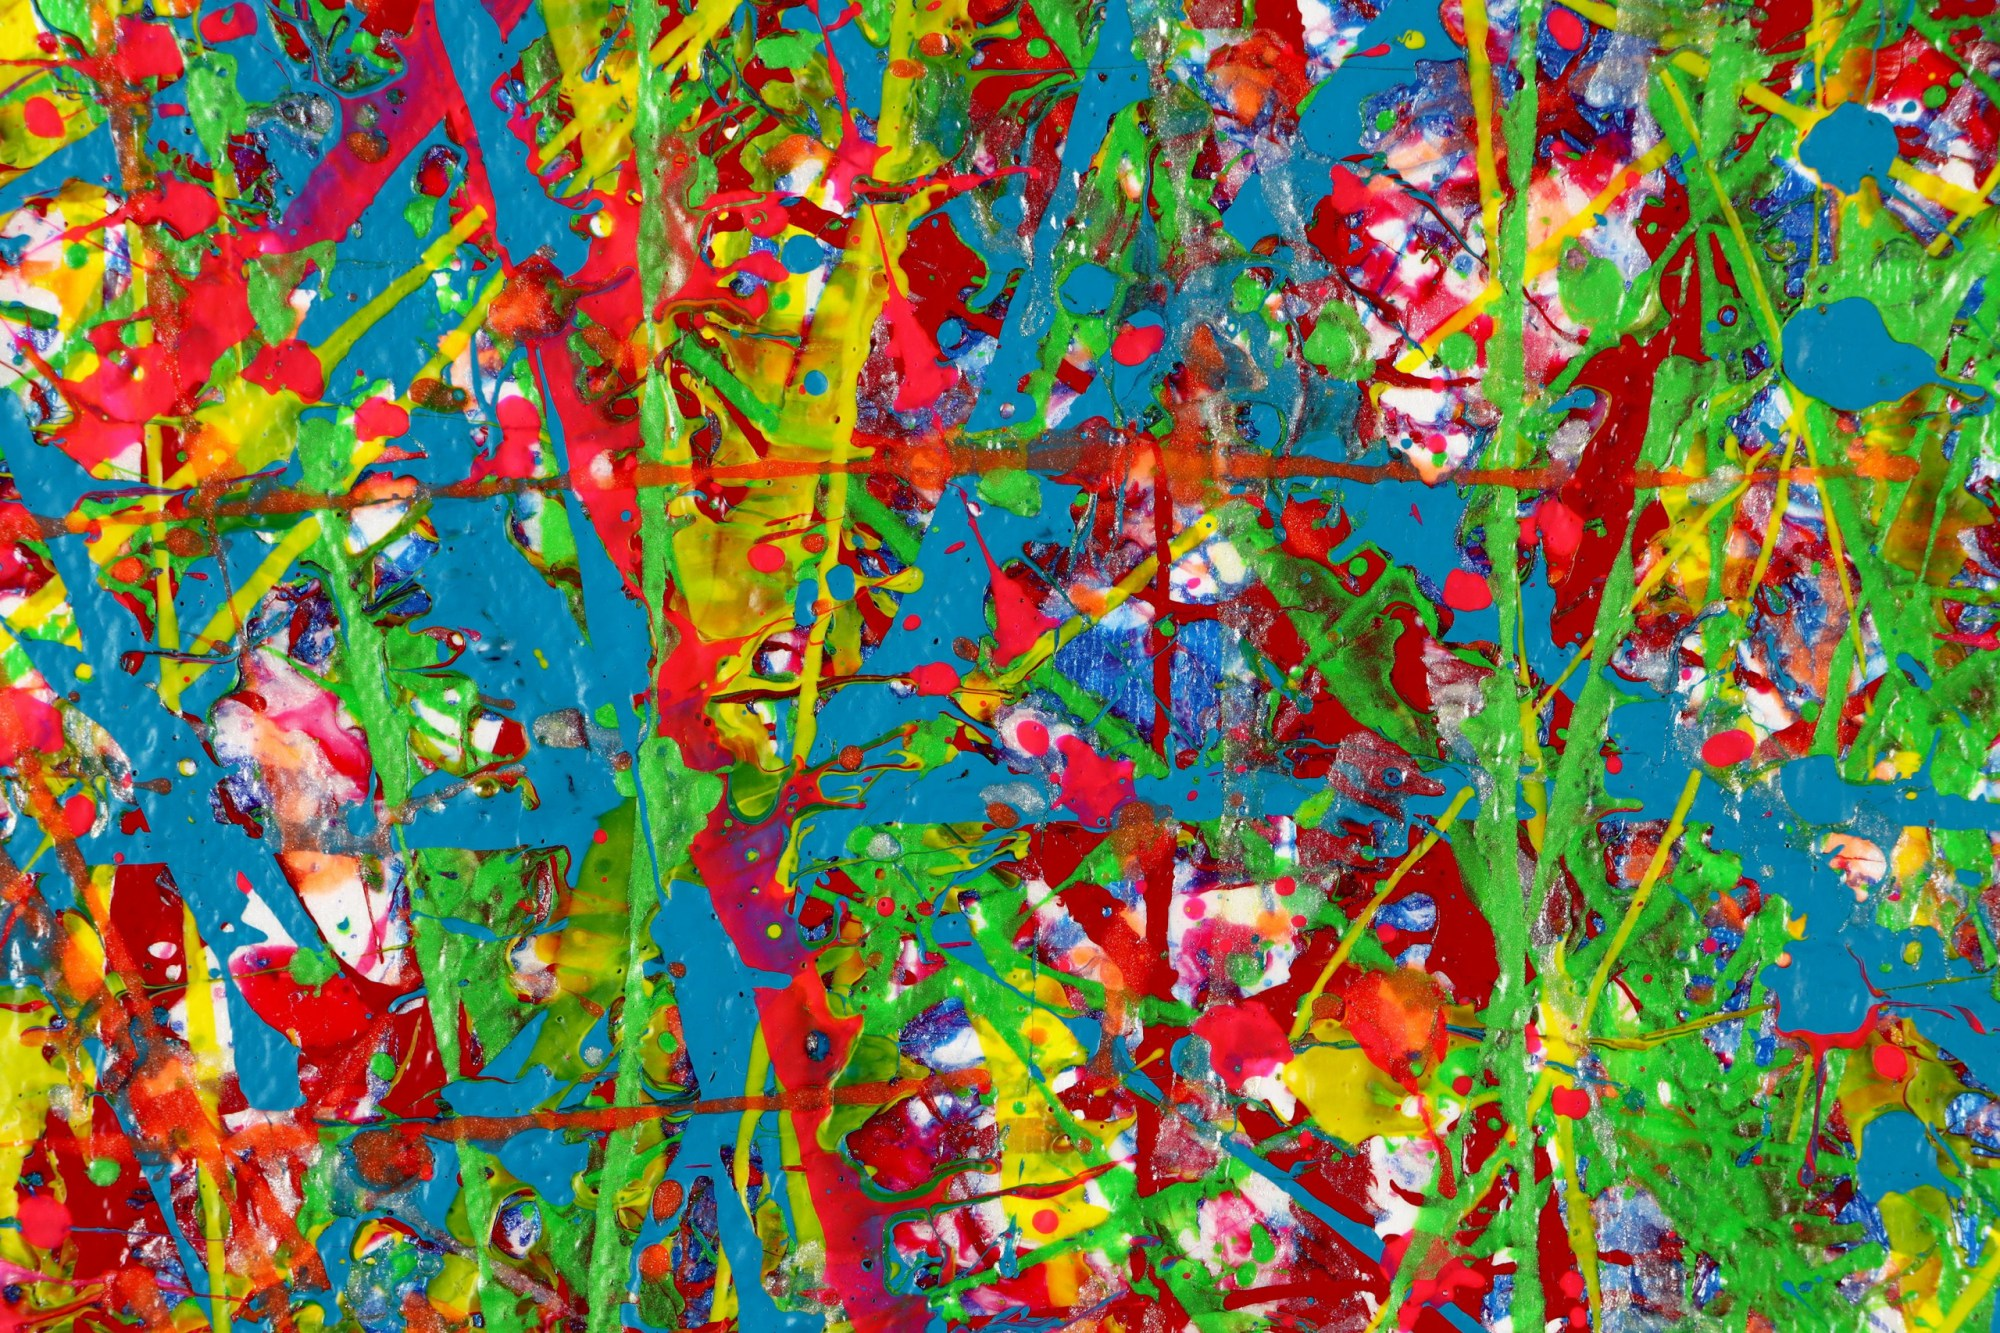 DETAIL / Colorful display of affection 2 (2021) / Diptych